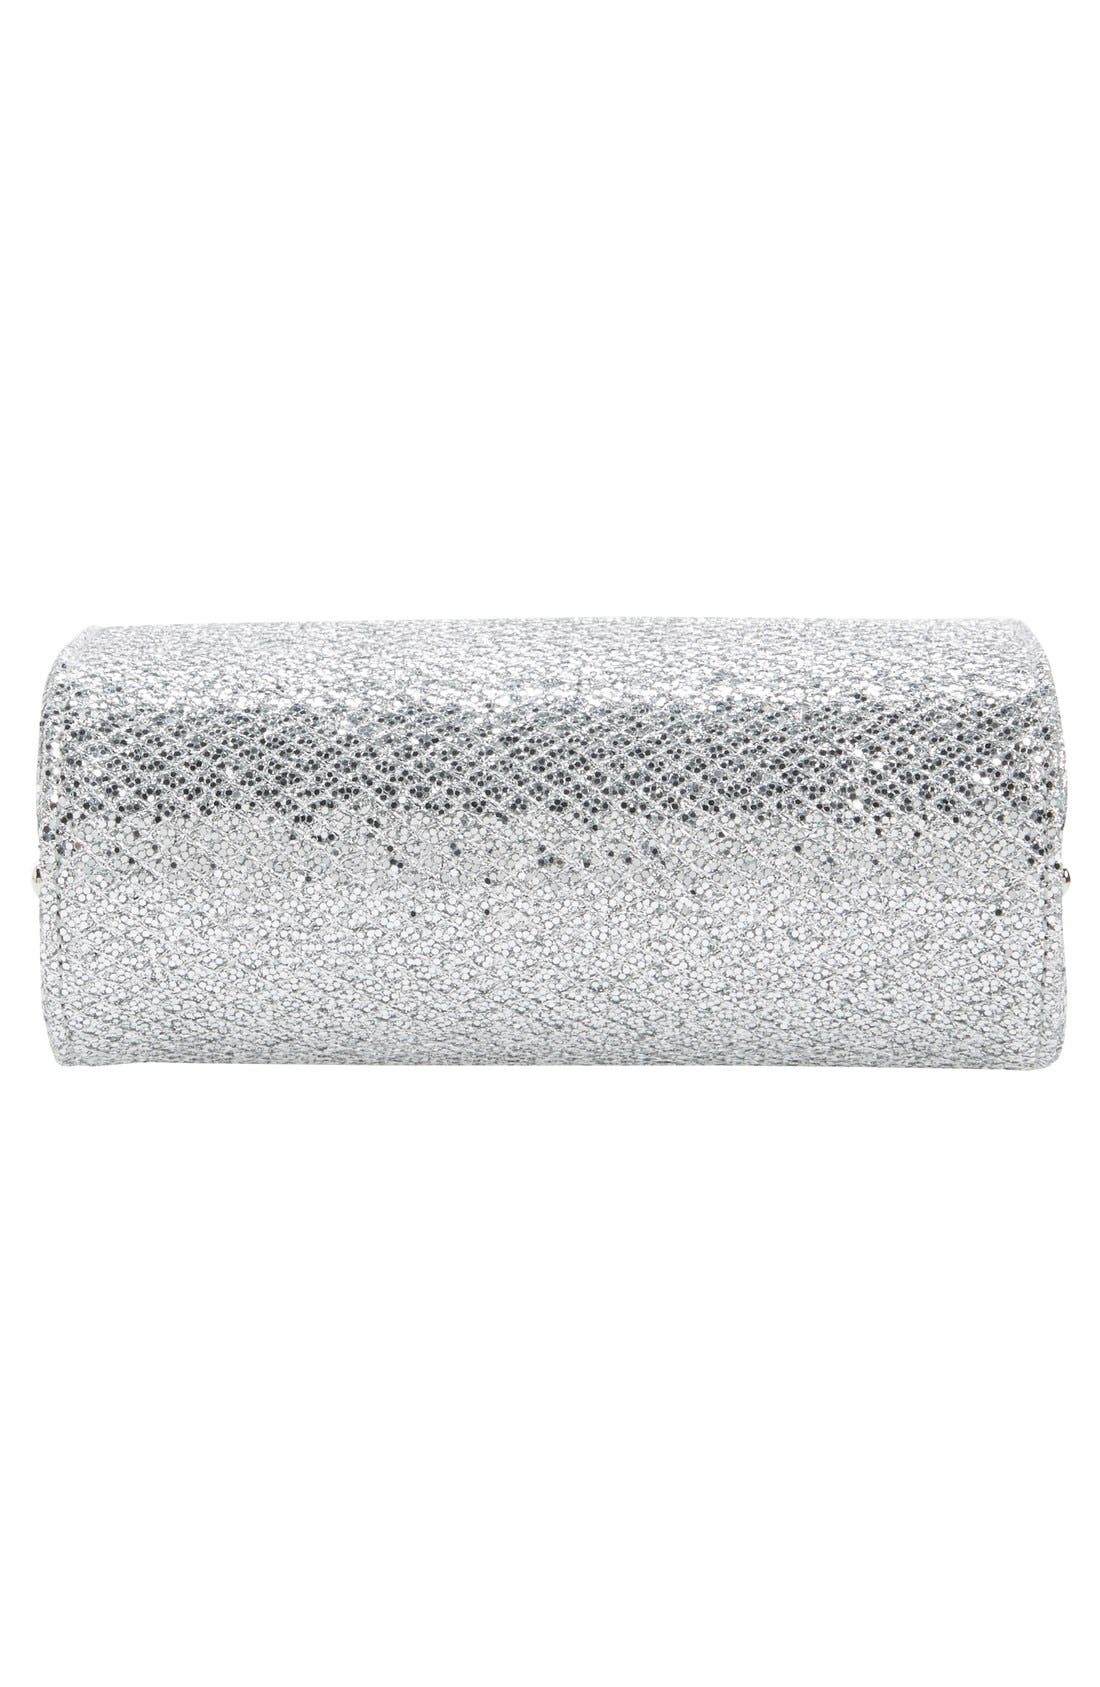 'Cate' Glitter Box Clutch,                             Alternate thumbnail 6, color,                             040